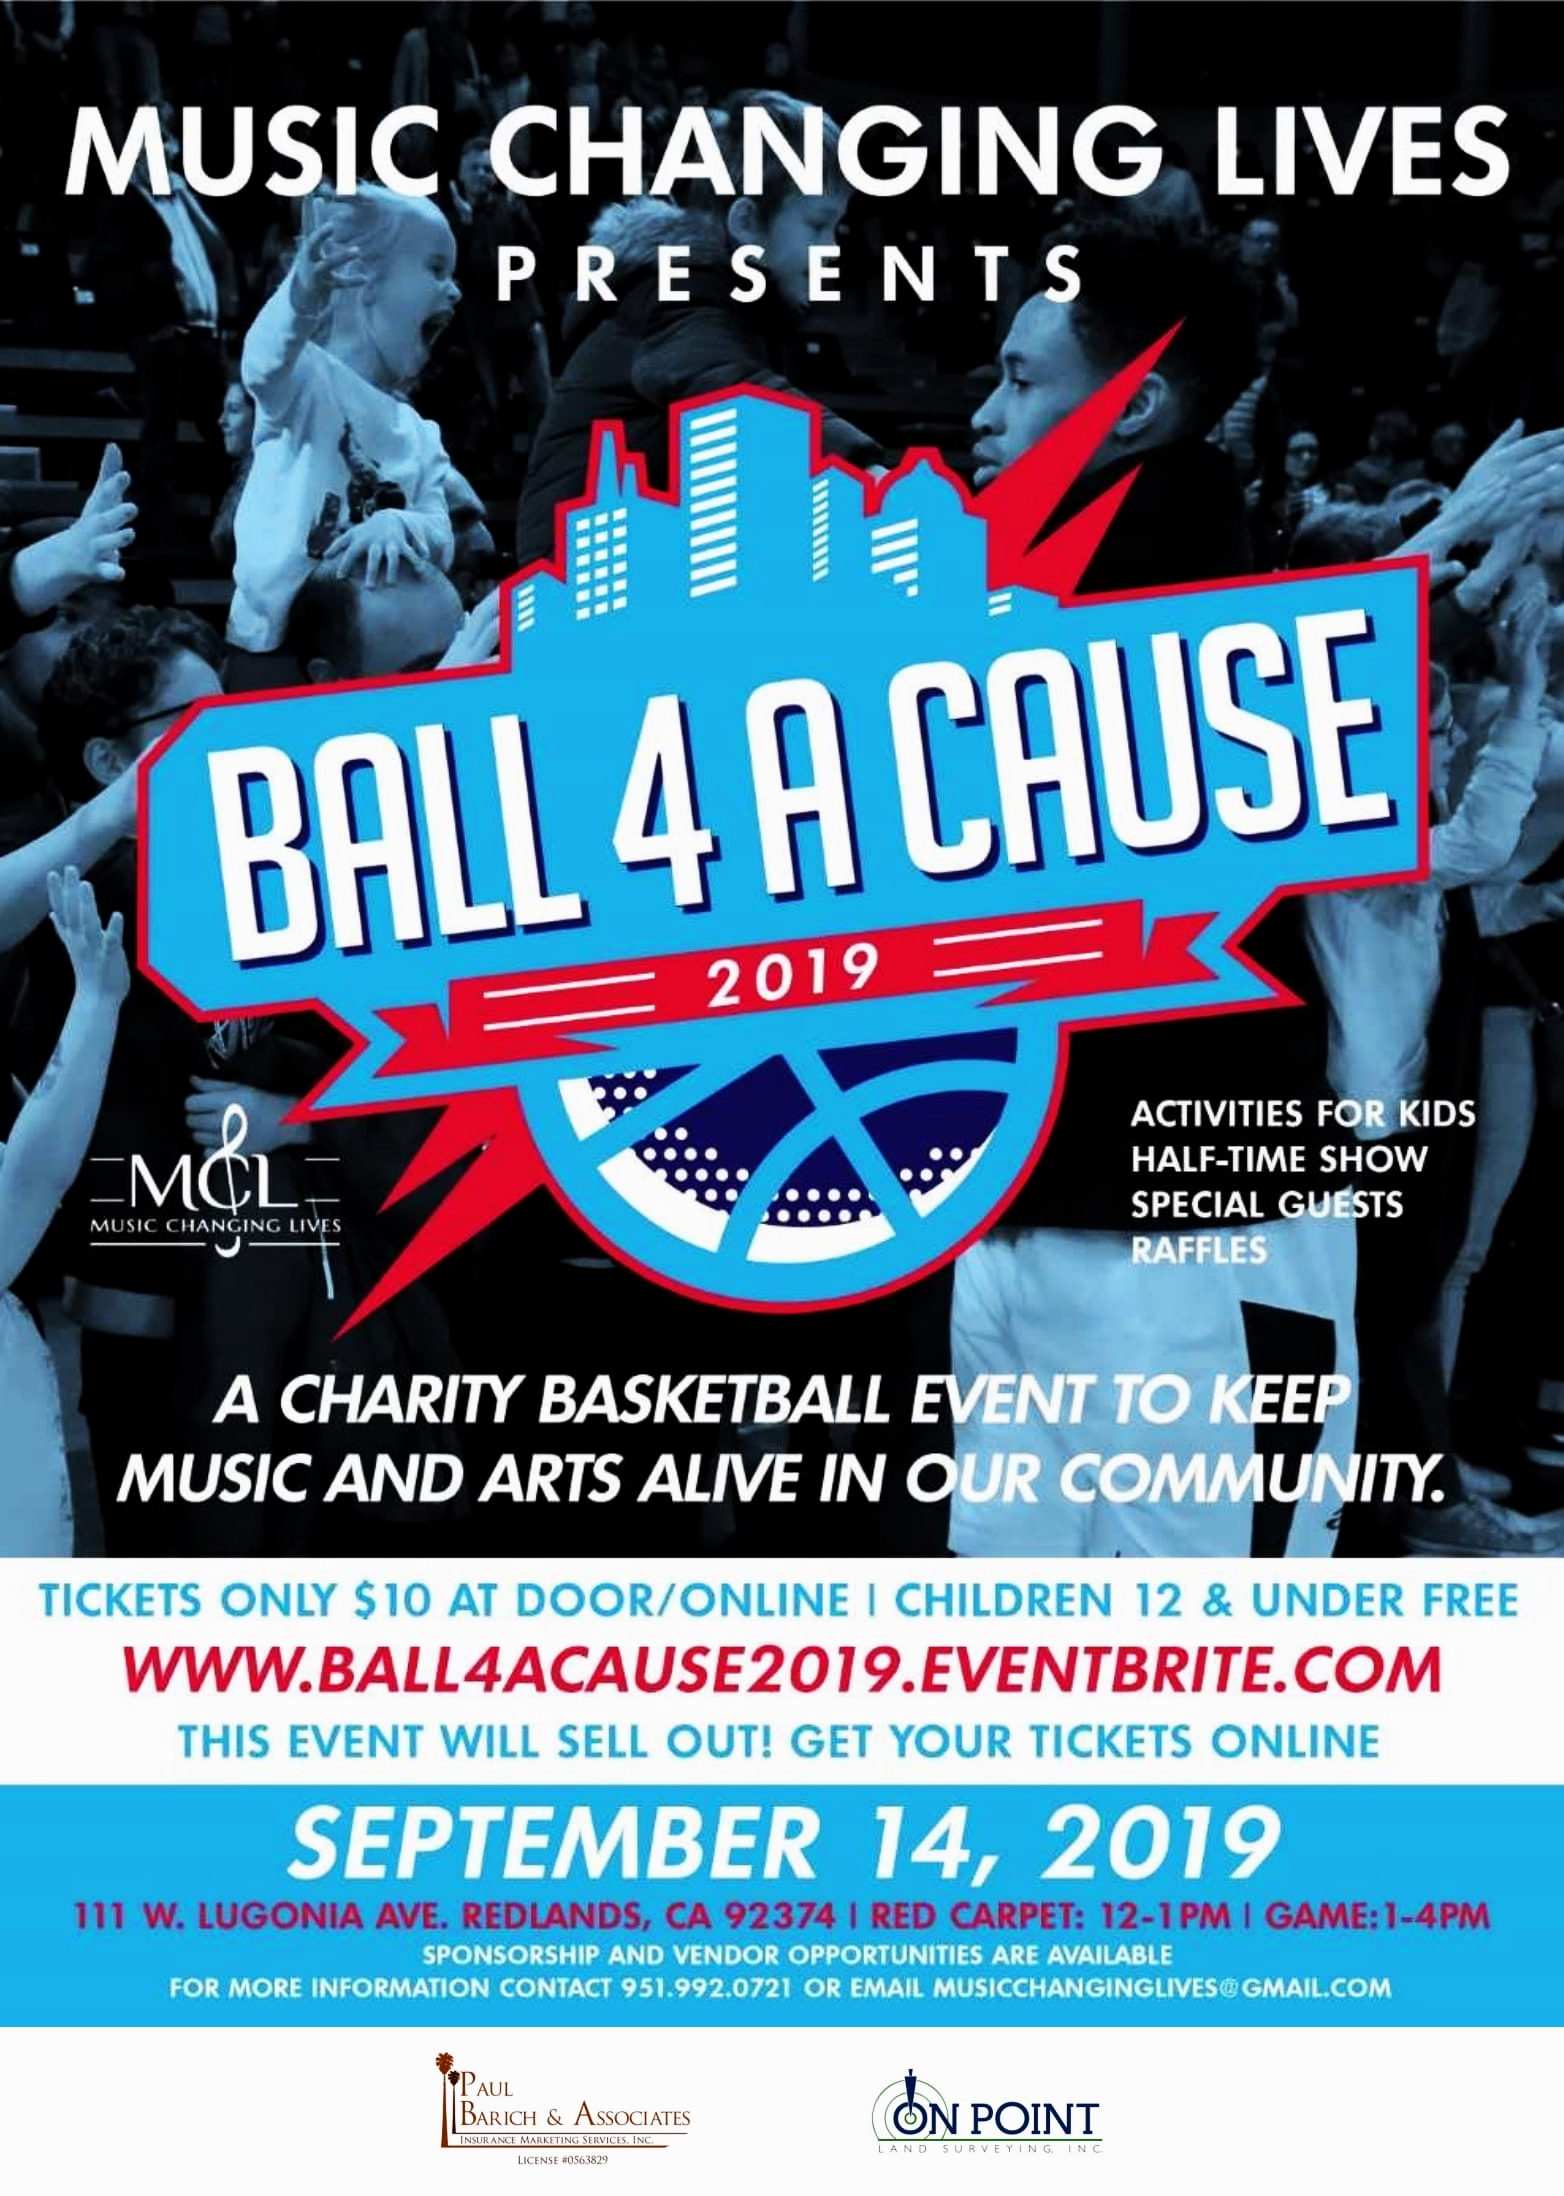 #Charity  #BasketballGame   On Saturday, September 14, 2019, Music Changing Lives will host our 4th  #Charity   #BasketballGame  from 12-4pm it's going dooownnn !!! We have amazing players coming out to support the cause ⛹🏽♀️⛹🏽♂️ Come watch an exciting game to benefit programs provided by  @musicchanginglives . With your support we are changing lives together one note at a time 🙌🏾 Support music and art programs for youth in our community and  #purchase tickets.. . . [Click link in bio for tickets]  Children 12 & under are FREE  There will be raffles 🎊 and vendors for you all to connect with.  Sponsorship and vendor opportunities are still available.  S/O our current sponsors 🤗 ⬇️⬇️⬇️⬇️⬇️⬇️⬇️⬇️⬇️ [Email] MusicChangingLives@gmail.com  For more information & join this movement with us 🔥🏀